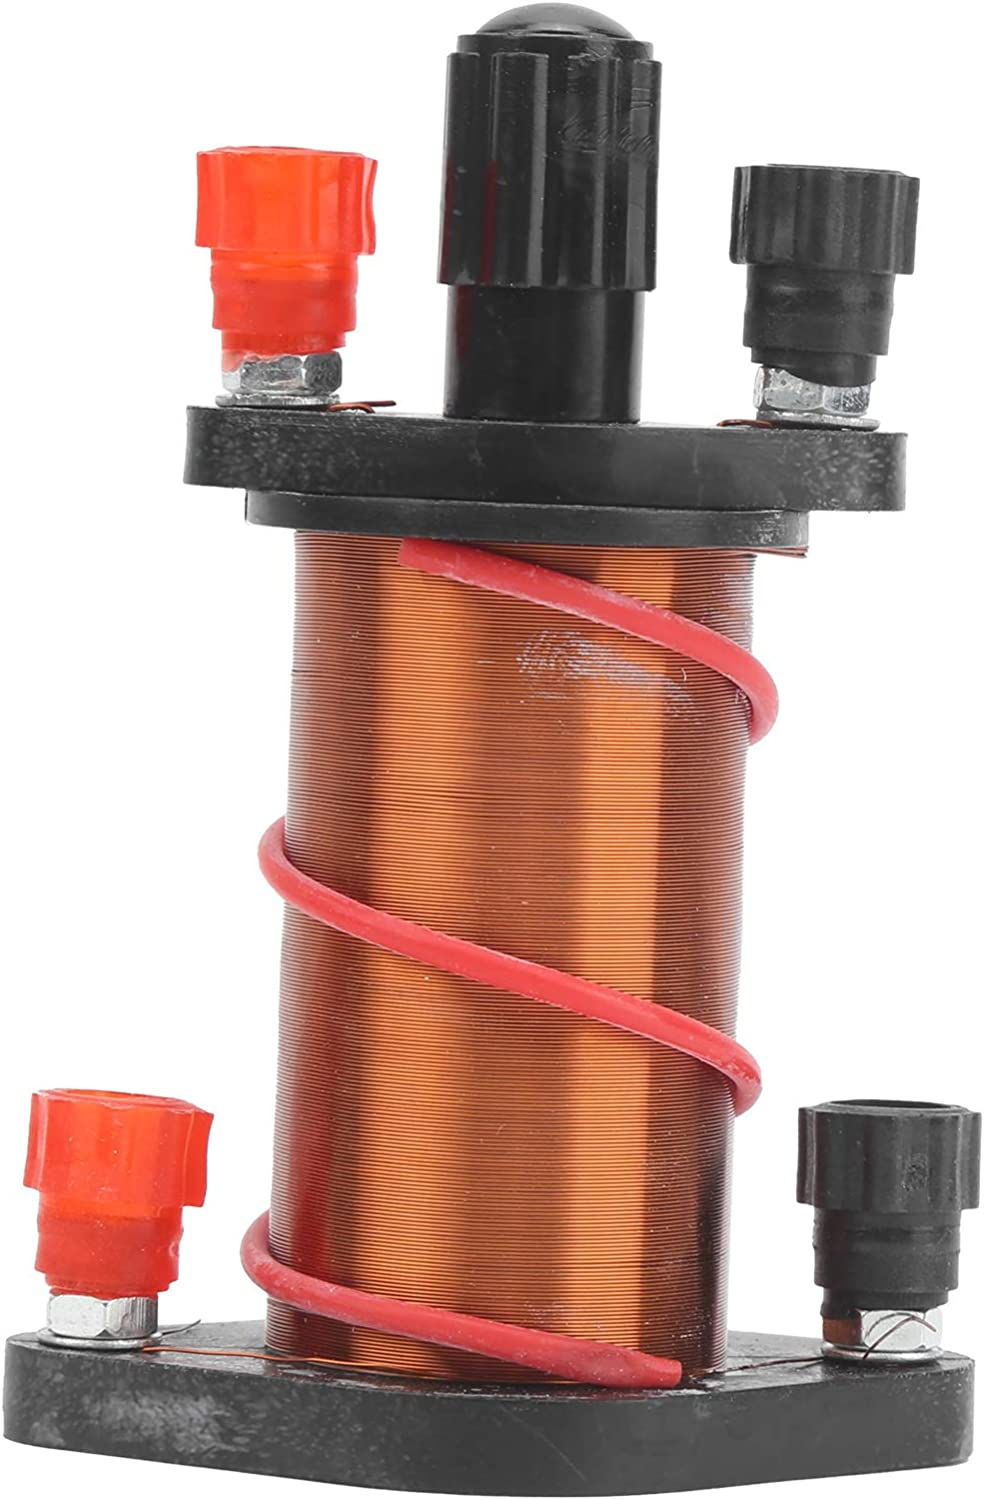 Electromagnetic Induction Coil, Primary Secondary Coil Set Secon